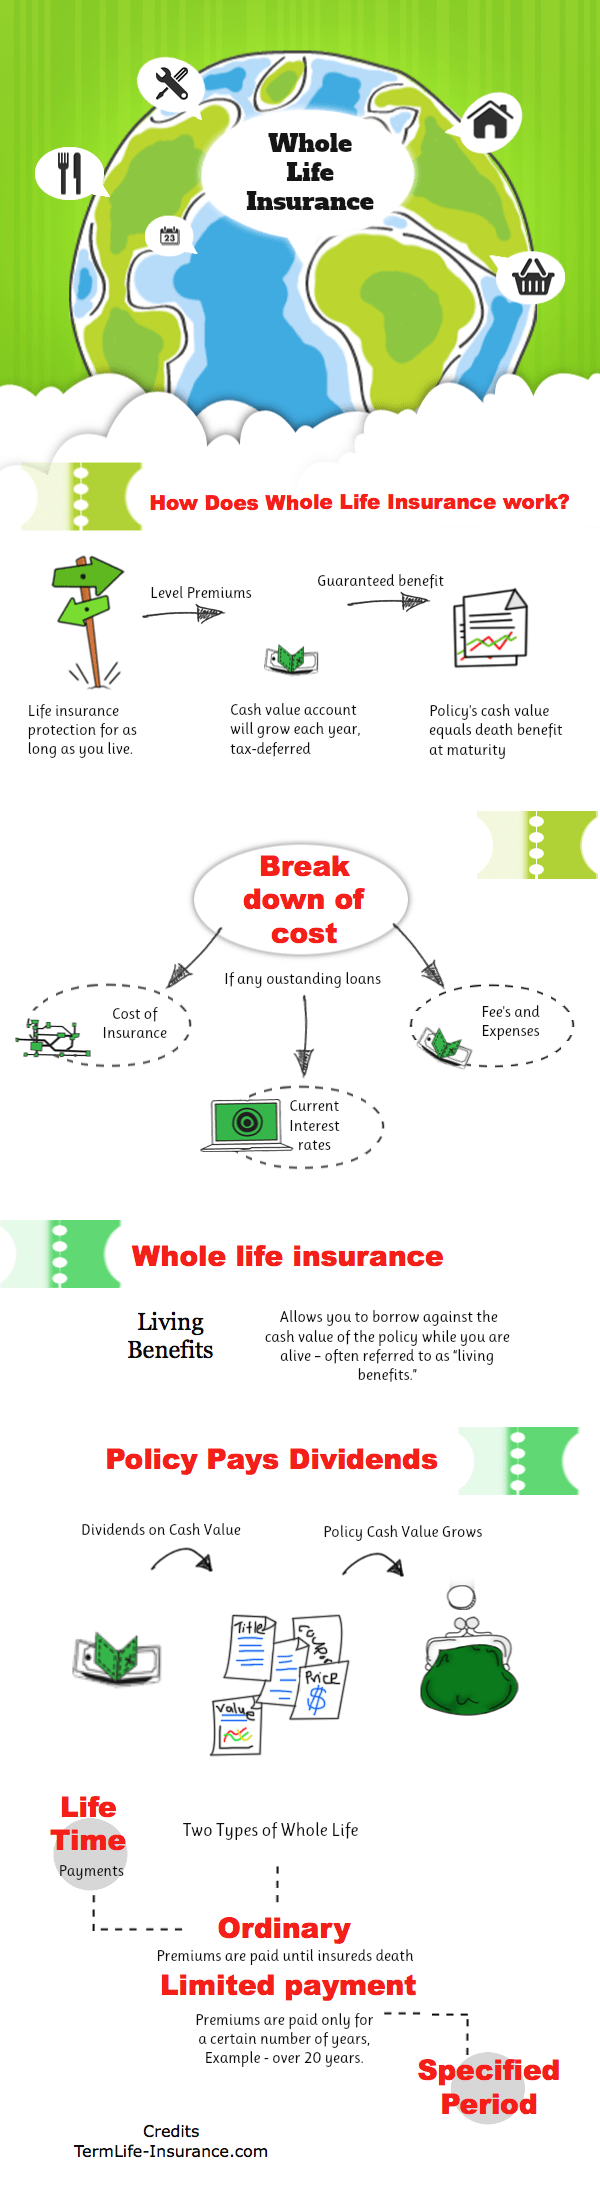 Free Whole Life Insurance Quotes Endearing Instant Whole Life Insurance Quotesup To $100000 In Coverage.